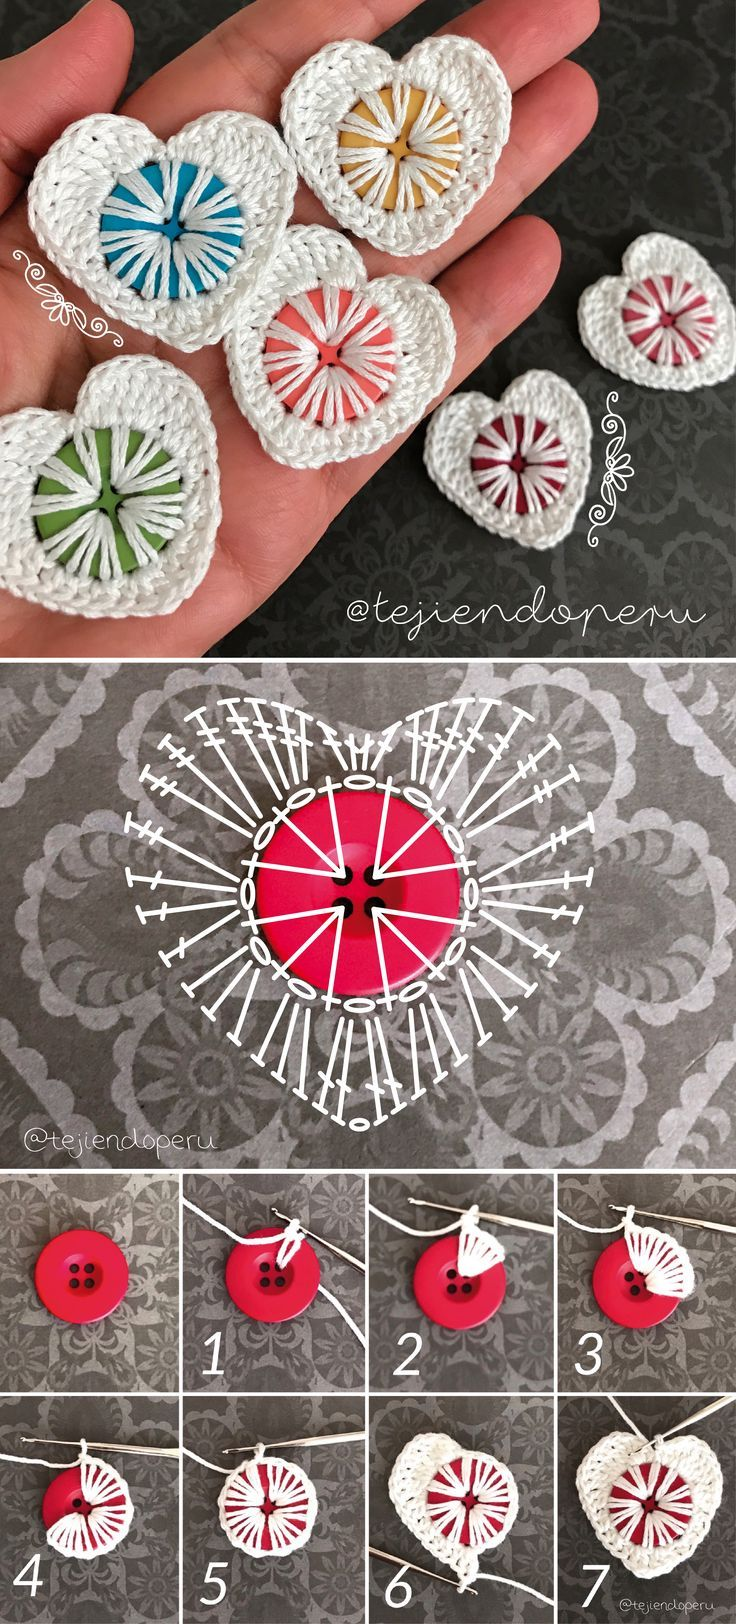 Crochet Coaster Patterns Diagrams A Few Pretty Snowflakes Button Hearts Such Lovely And Unique Idea